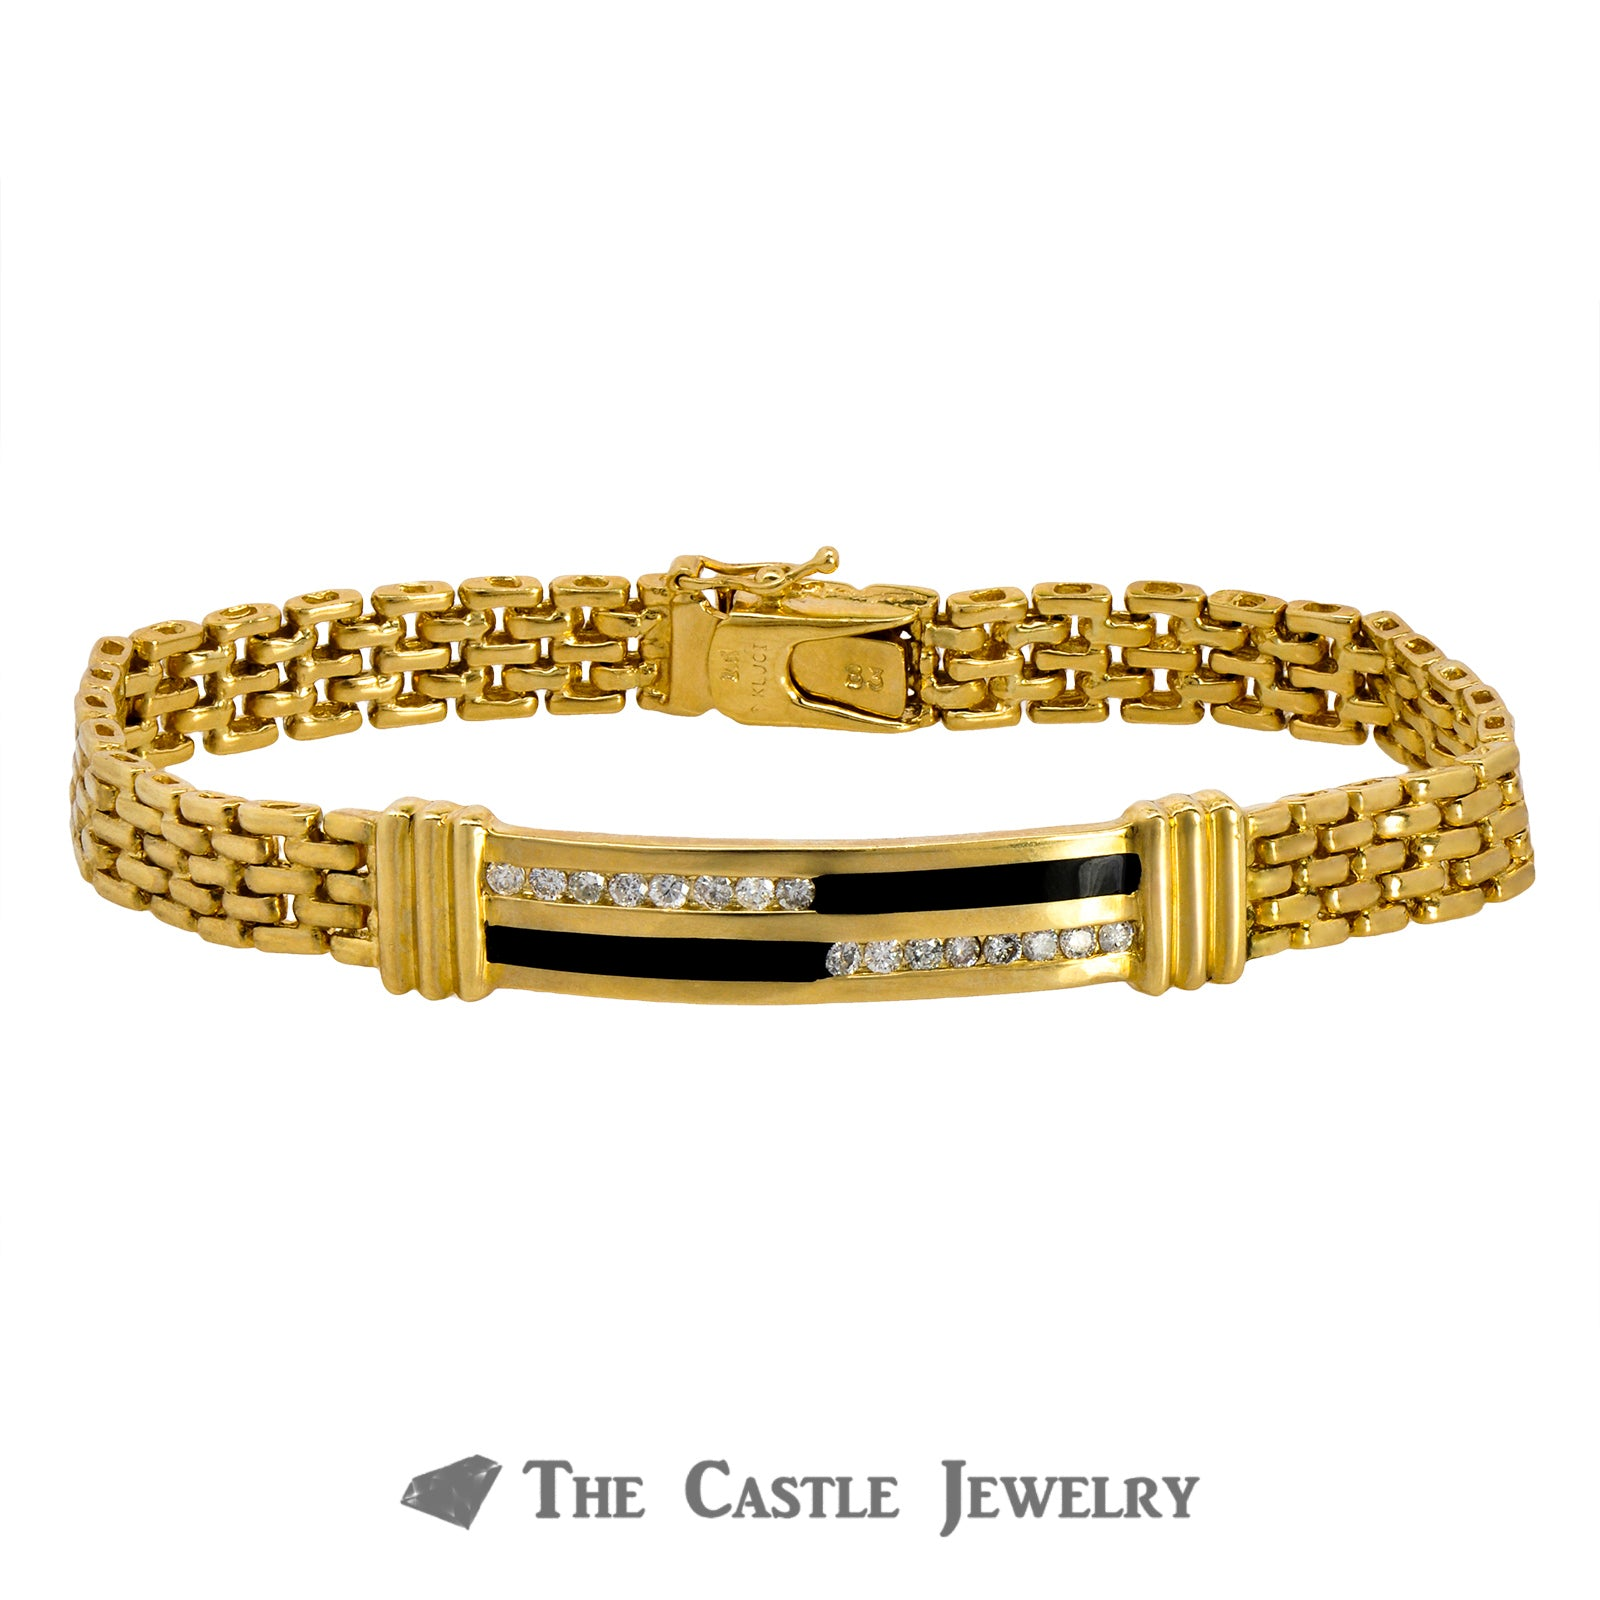 8 Inch Men's Bracelet Crafted in 14K Yellow Gold with Onyx and Diamond Bar Center